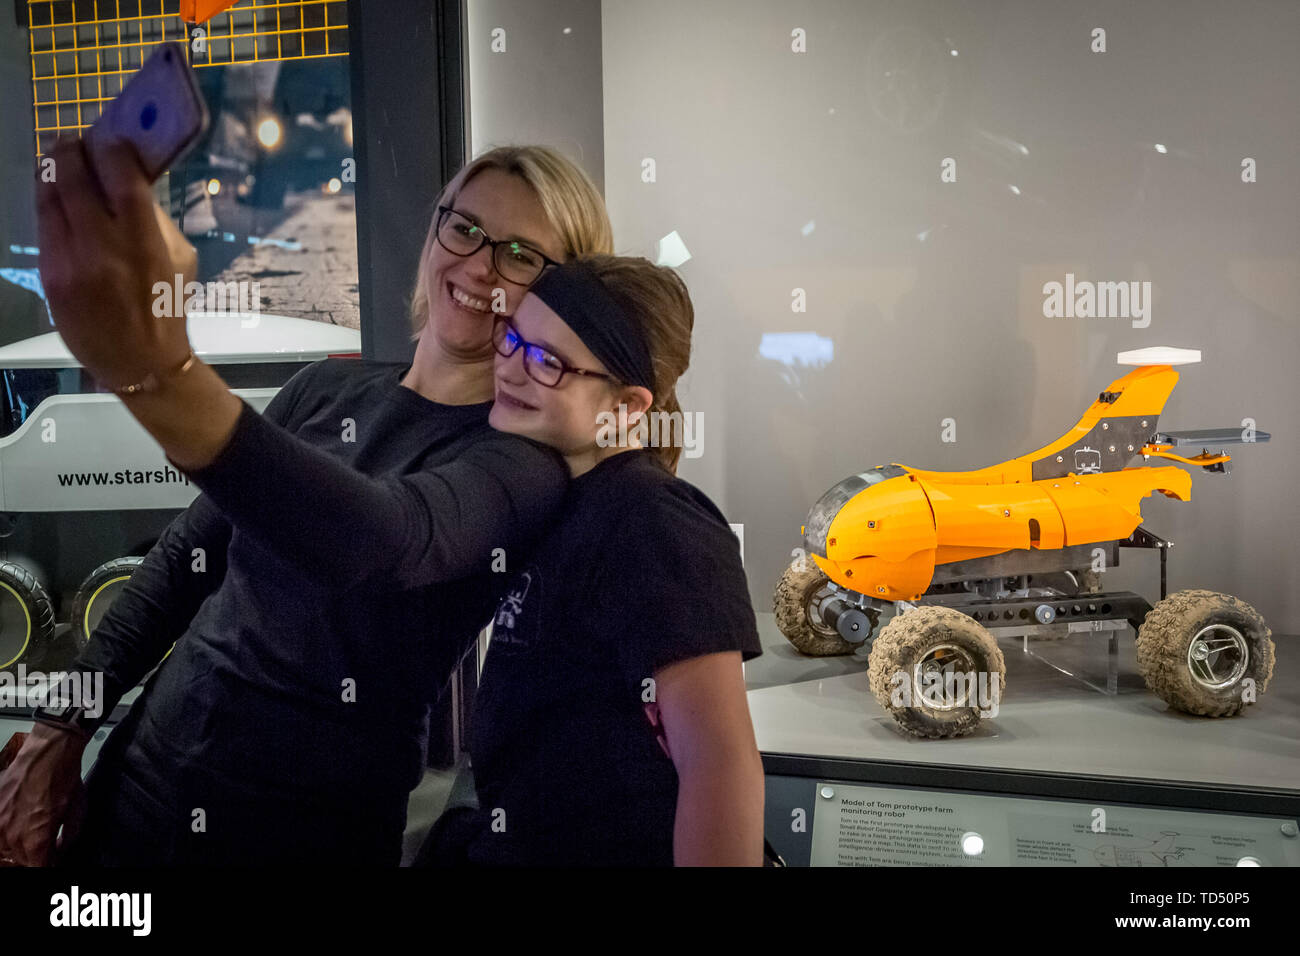 """London, UK. 12th June 2019. Driverless technology 'Who is in control?"""" exhibition is launched the Science Museum. Visitors take a selfie with 'Tom' a prototype farm monitoring robot designed by the Small Robot Company already in field trials on 20 farms across the UK. Exploring the history of self-driving vehicles, the exhibition also examines how much control we're willing to transfer to them and how their wider deployment could shape out habits, behaviour and society. Credit: Guy Corbishley/Alamy Live News Stock Photo"""